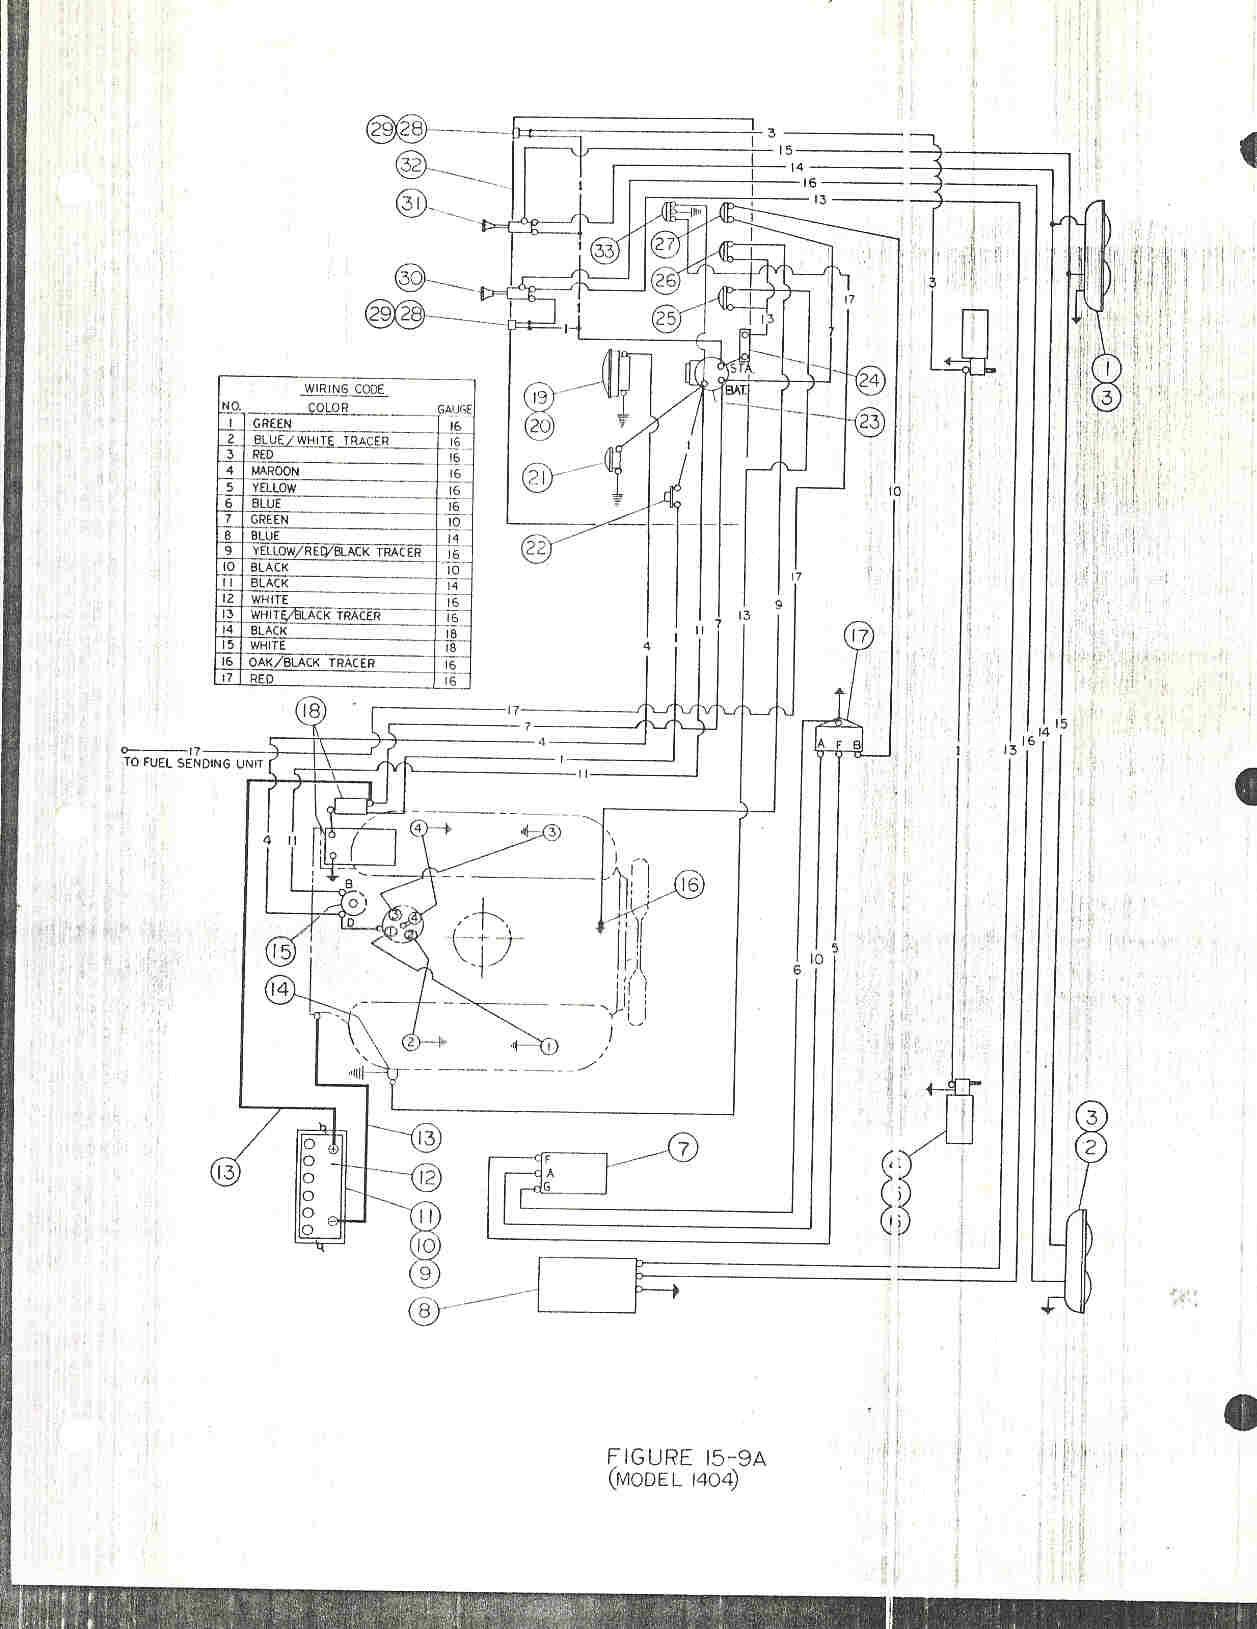 figure 15 9A www goldcordmine com manuals thiokol 1404 Chore Master Pressure Washer 3500 at gsmportal.co